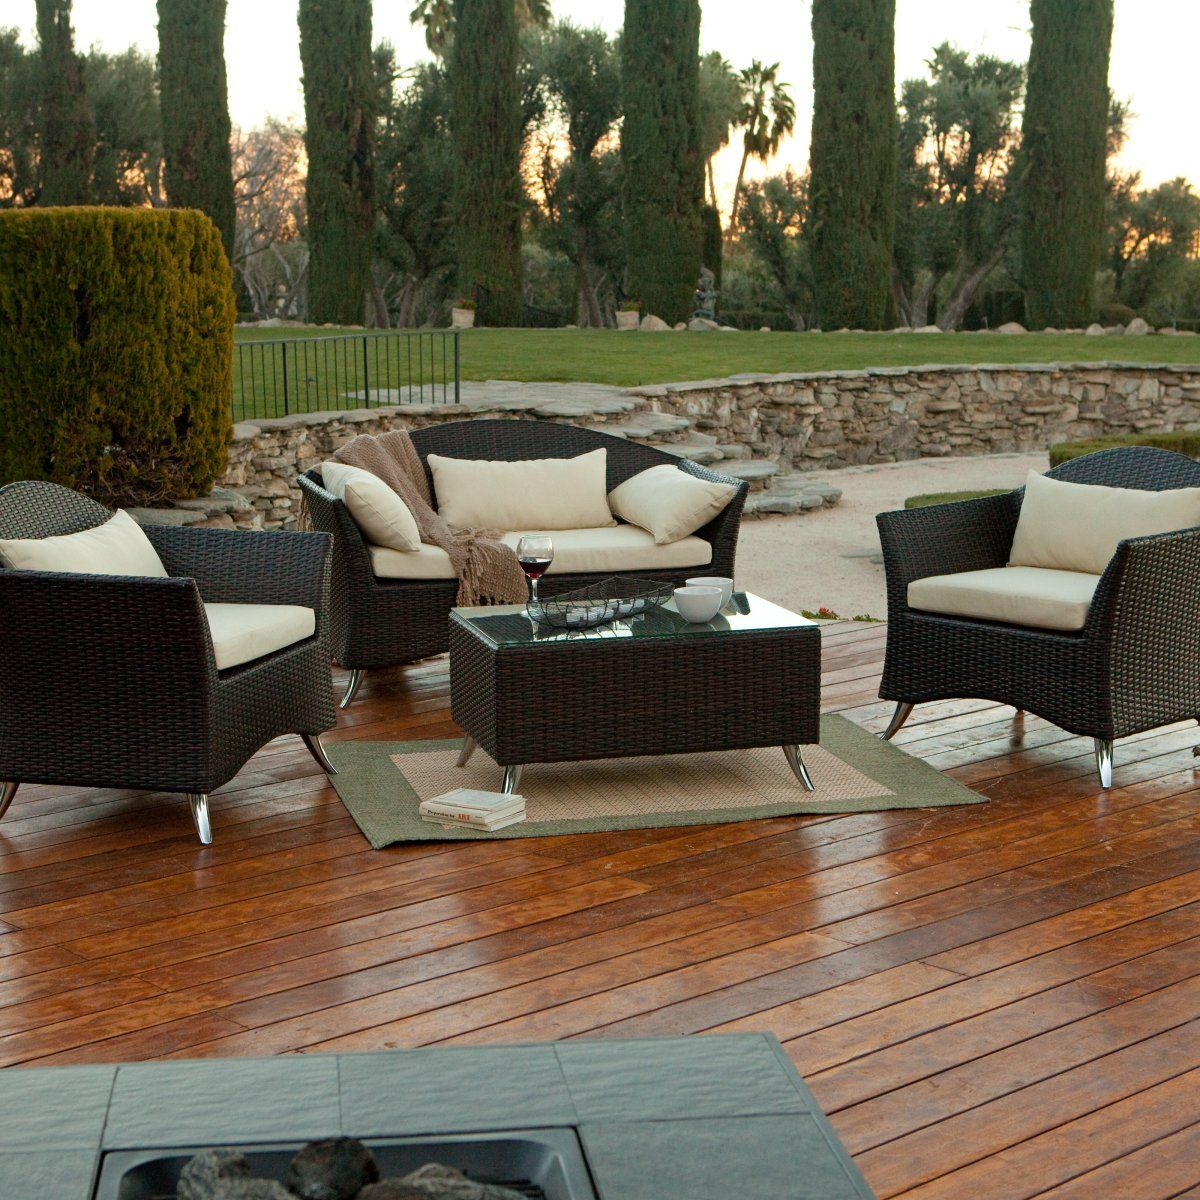 South Bay All Weather Wicker Conversation Patio Set Seats 4 Conversation Patio Sets At Patio Furniture Usa Patio Furniture Collection Patio Patio Set